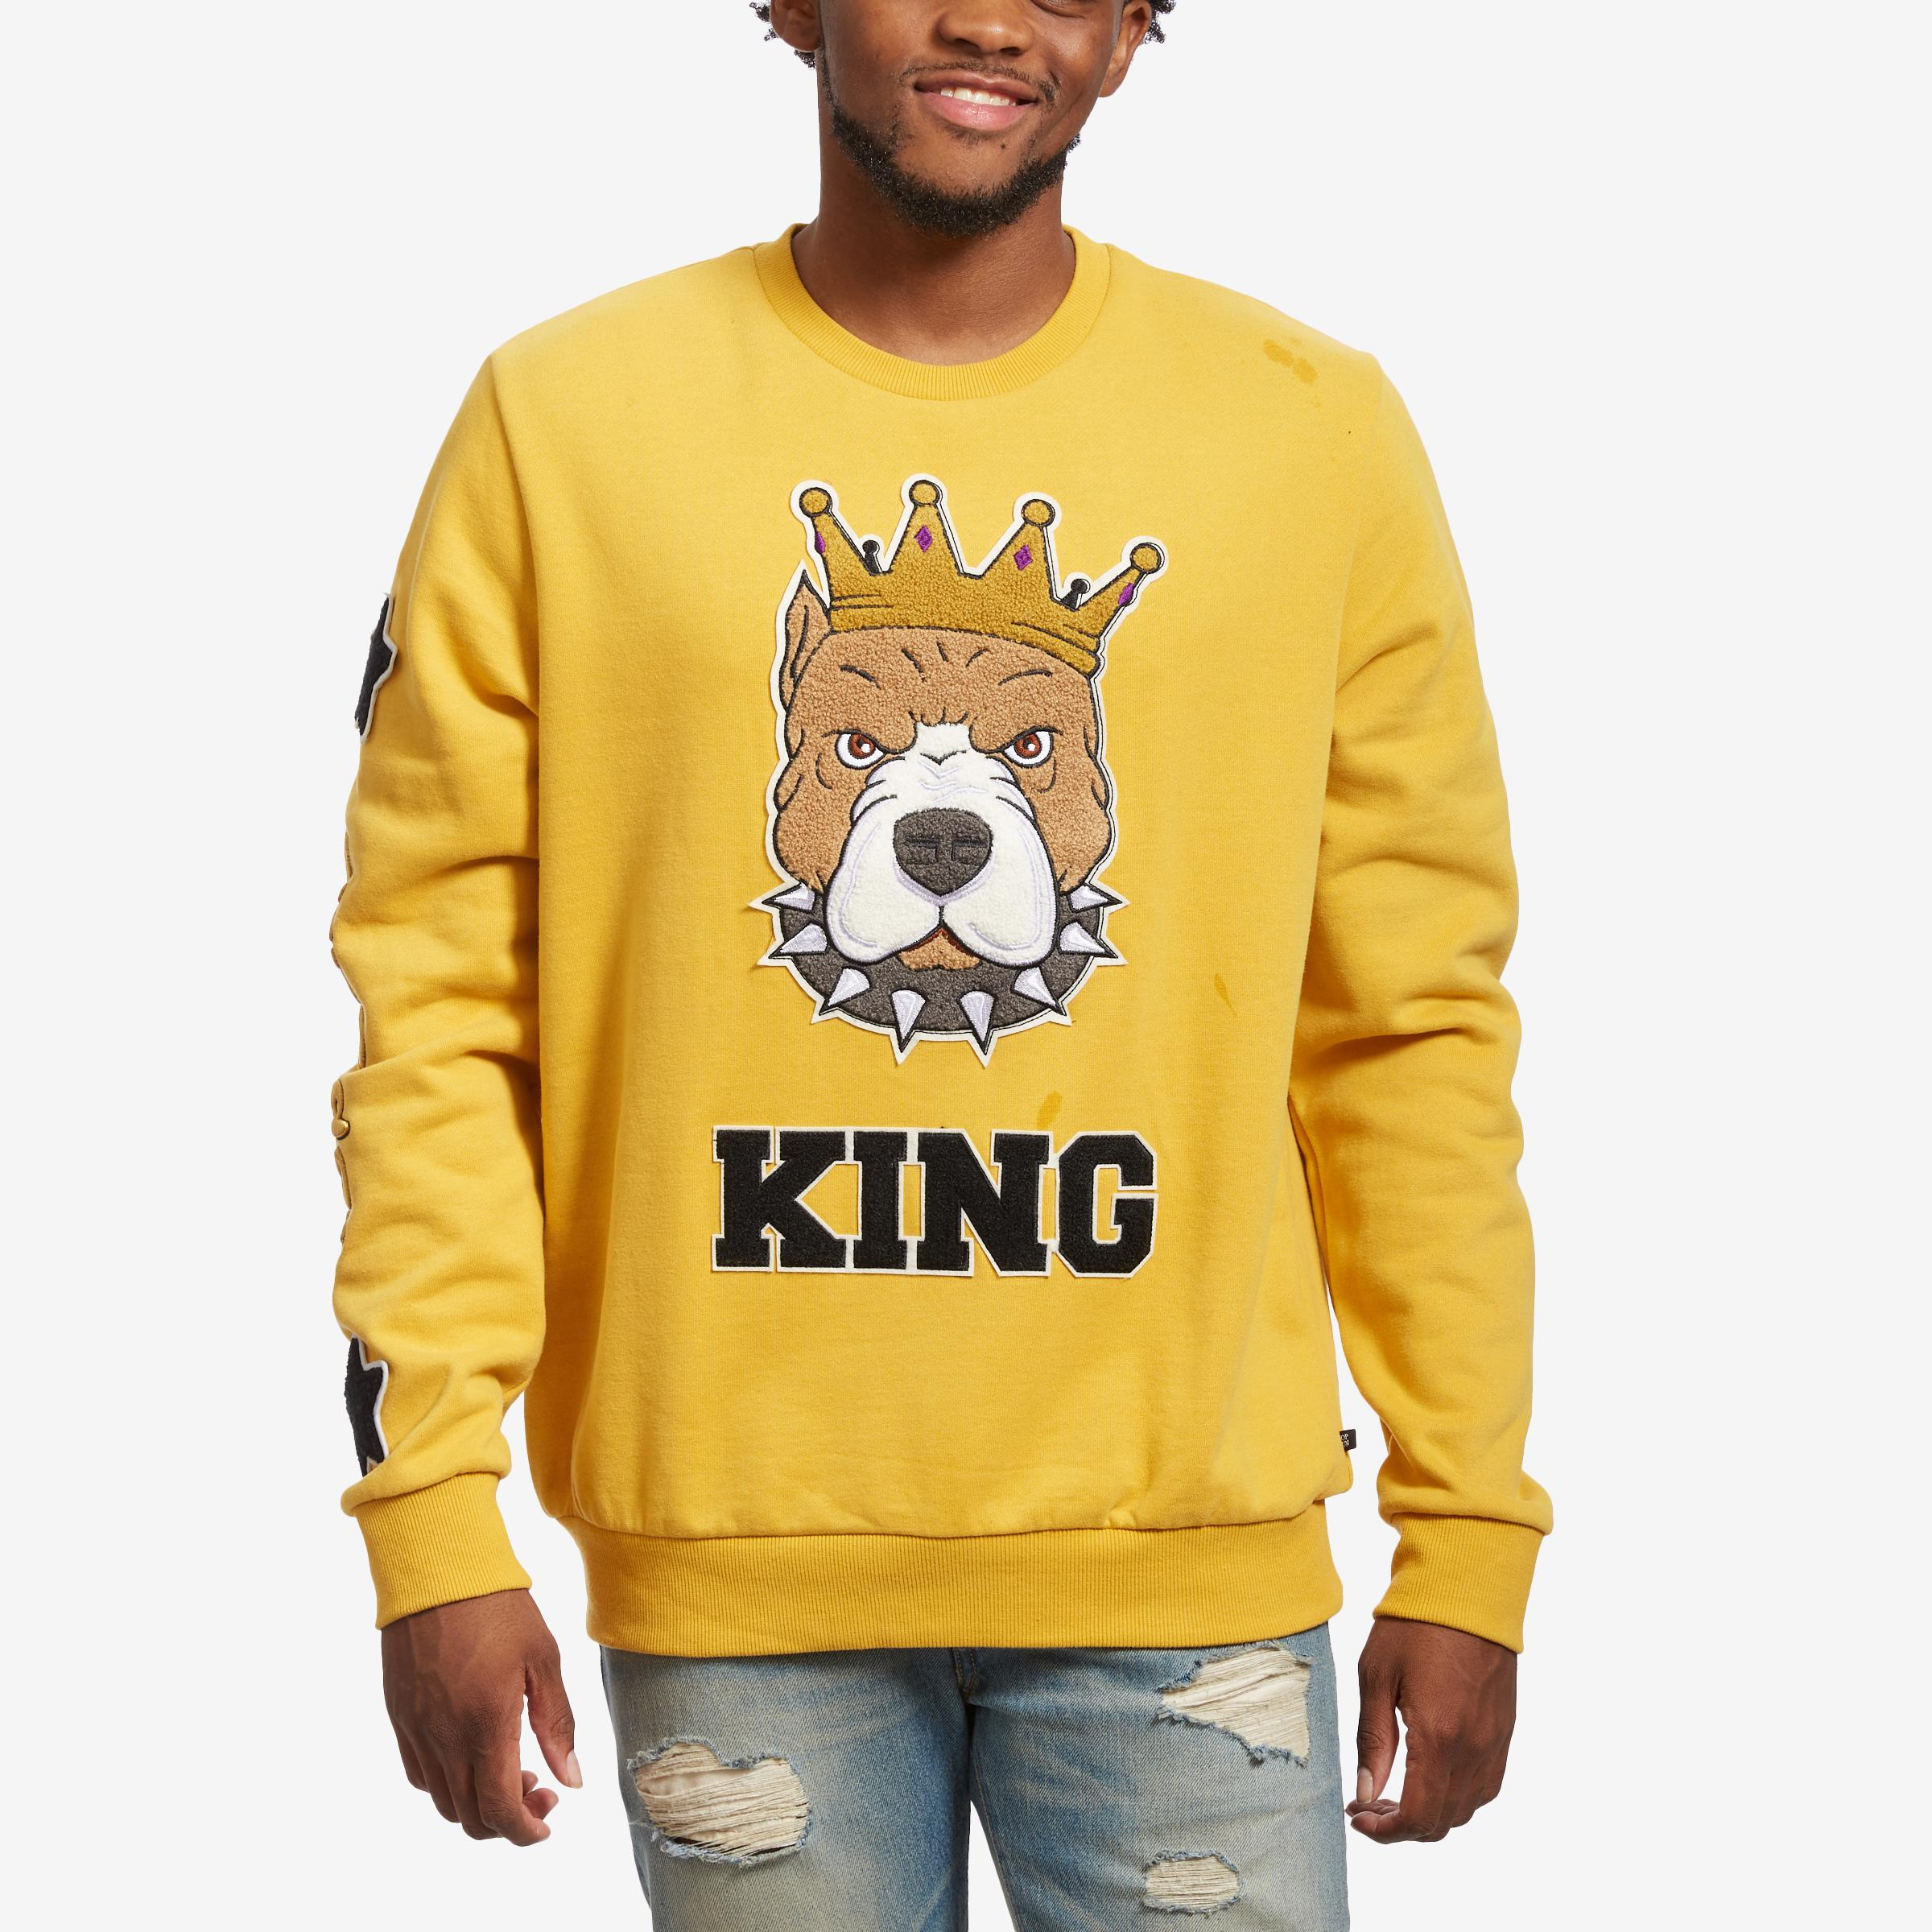 Men's King Crewneck